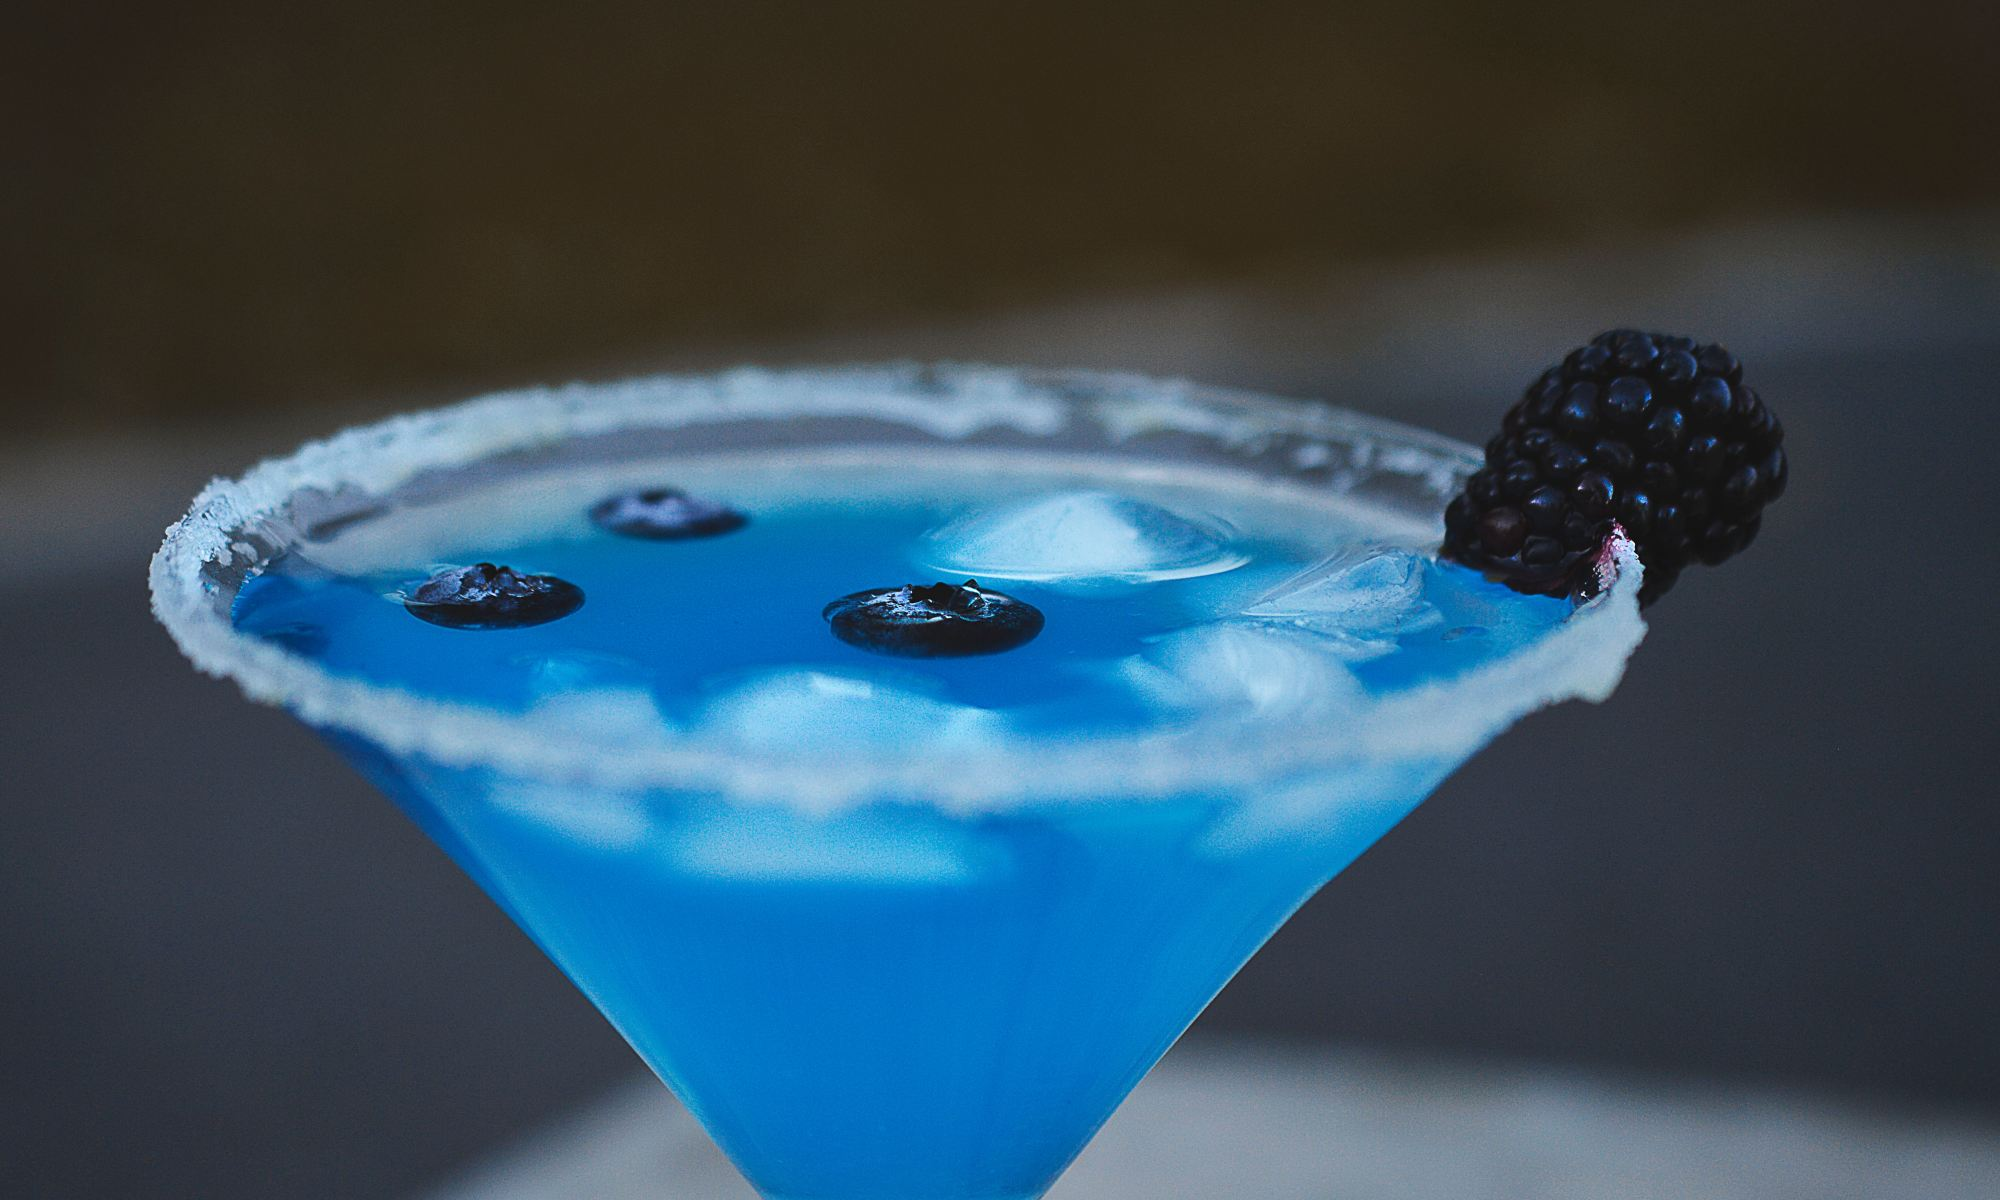 Blue alcoholic drink in martini glass